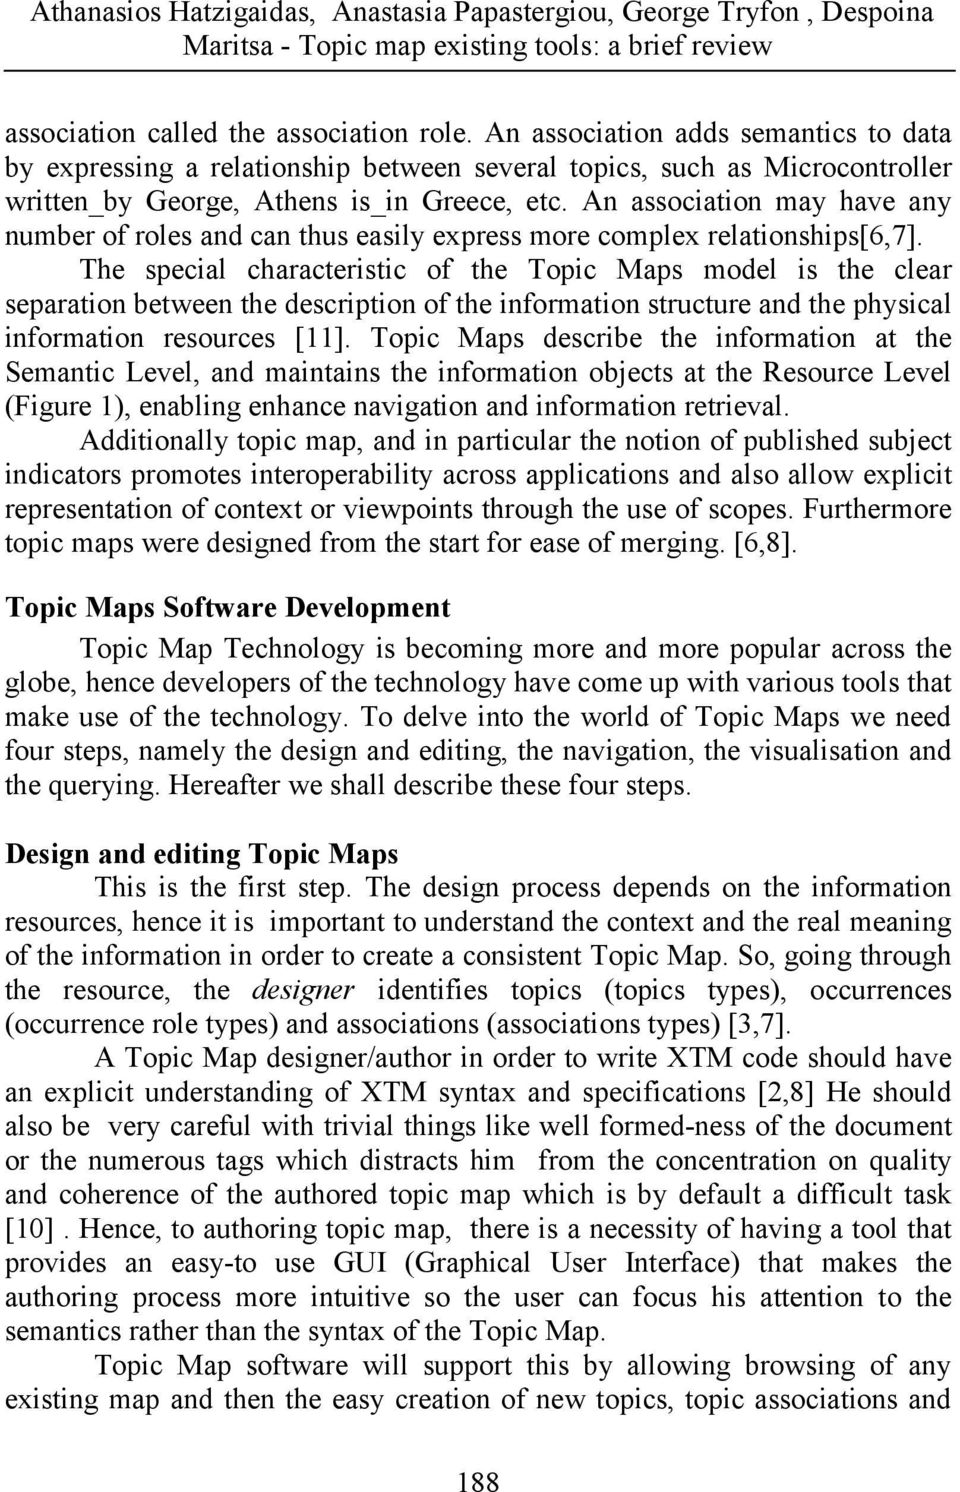 The special characteristic of the Topic Maps model is the clear separation between the description of the information structure and the physical information resources [11].